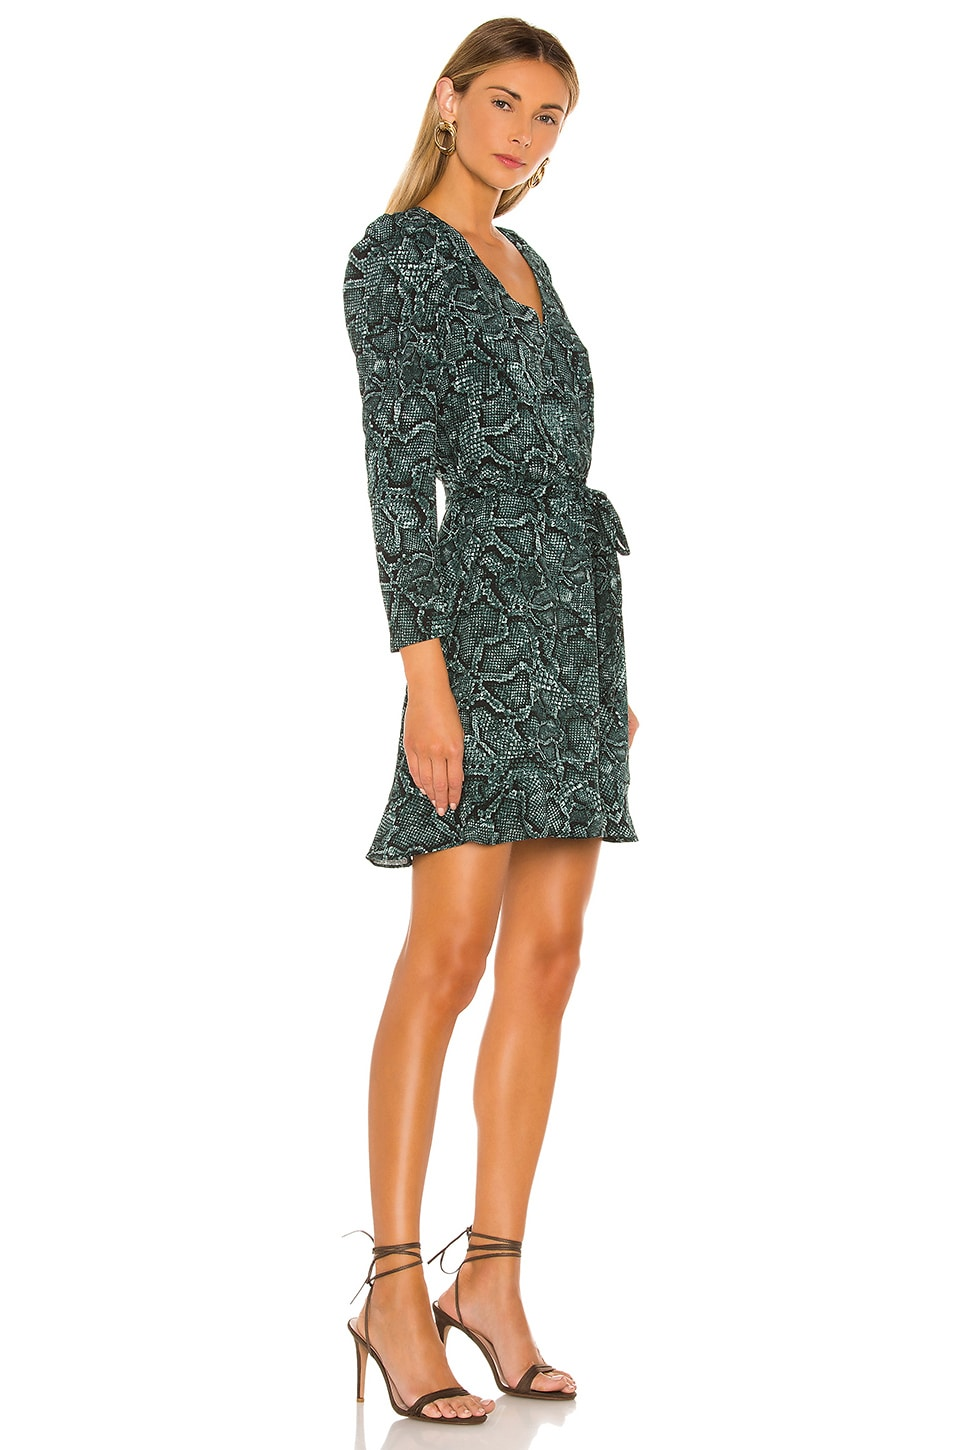 Tie Waist Snake Print Dress, view 2, click to view large image.